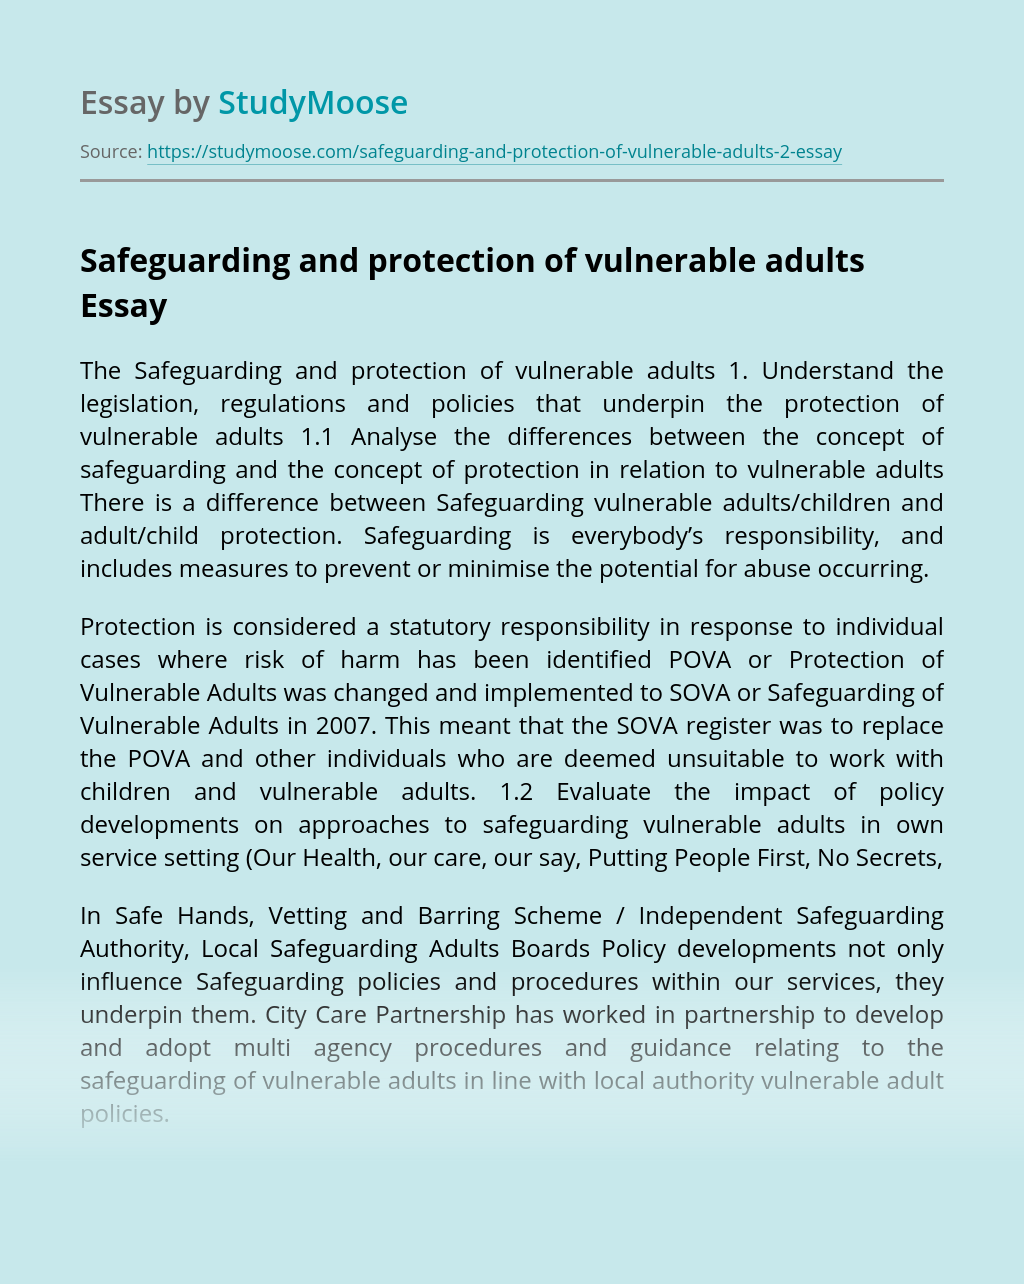 Safeguarding and protection of vulnerable adults